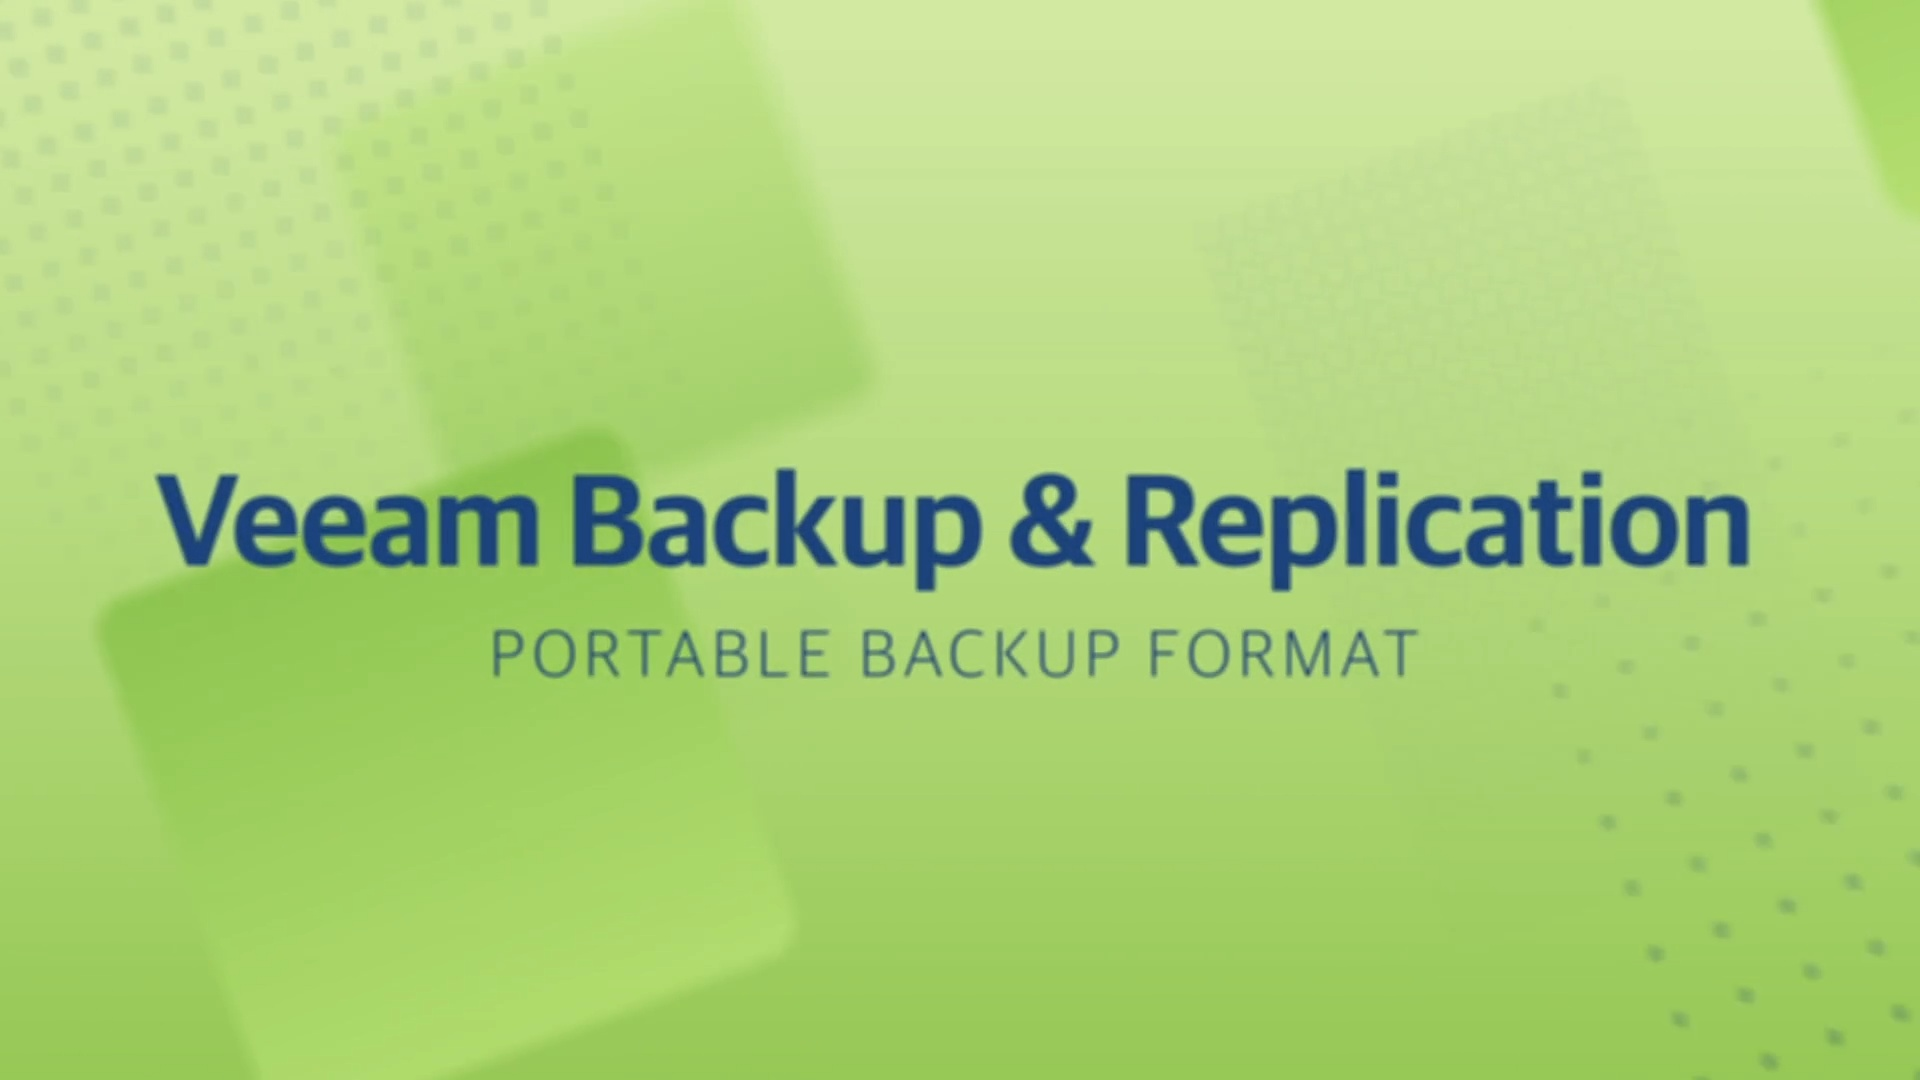 Product launch v11 - VBR - Portable Backup Format